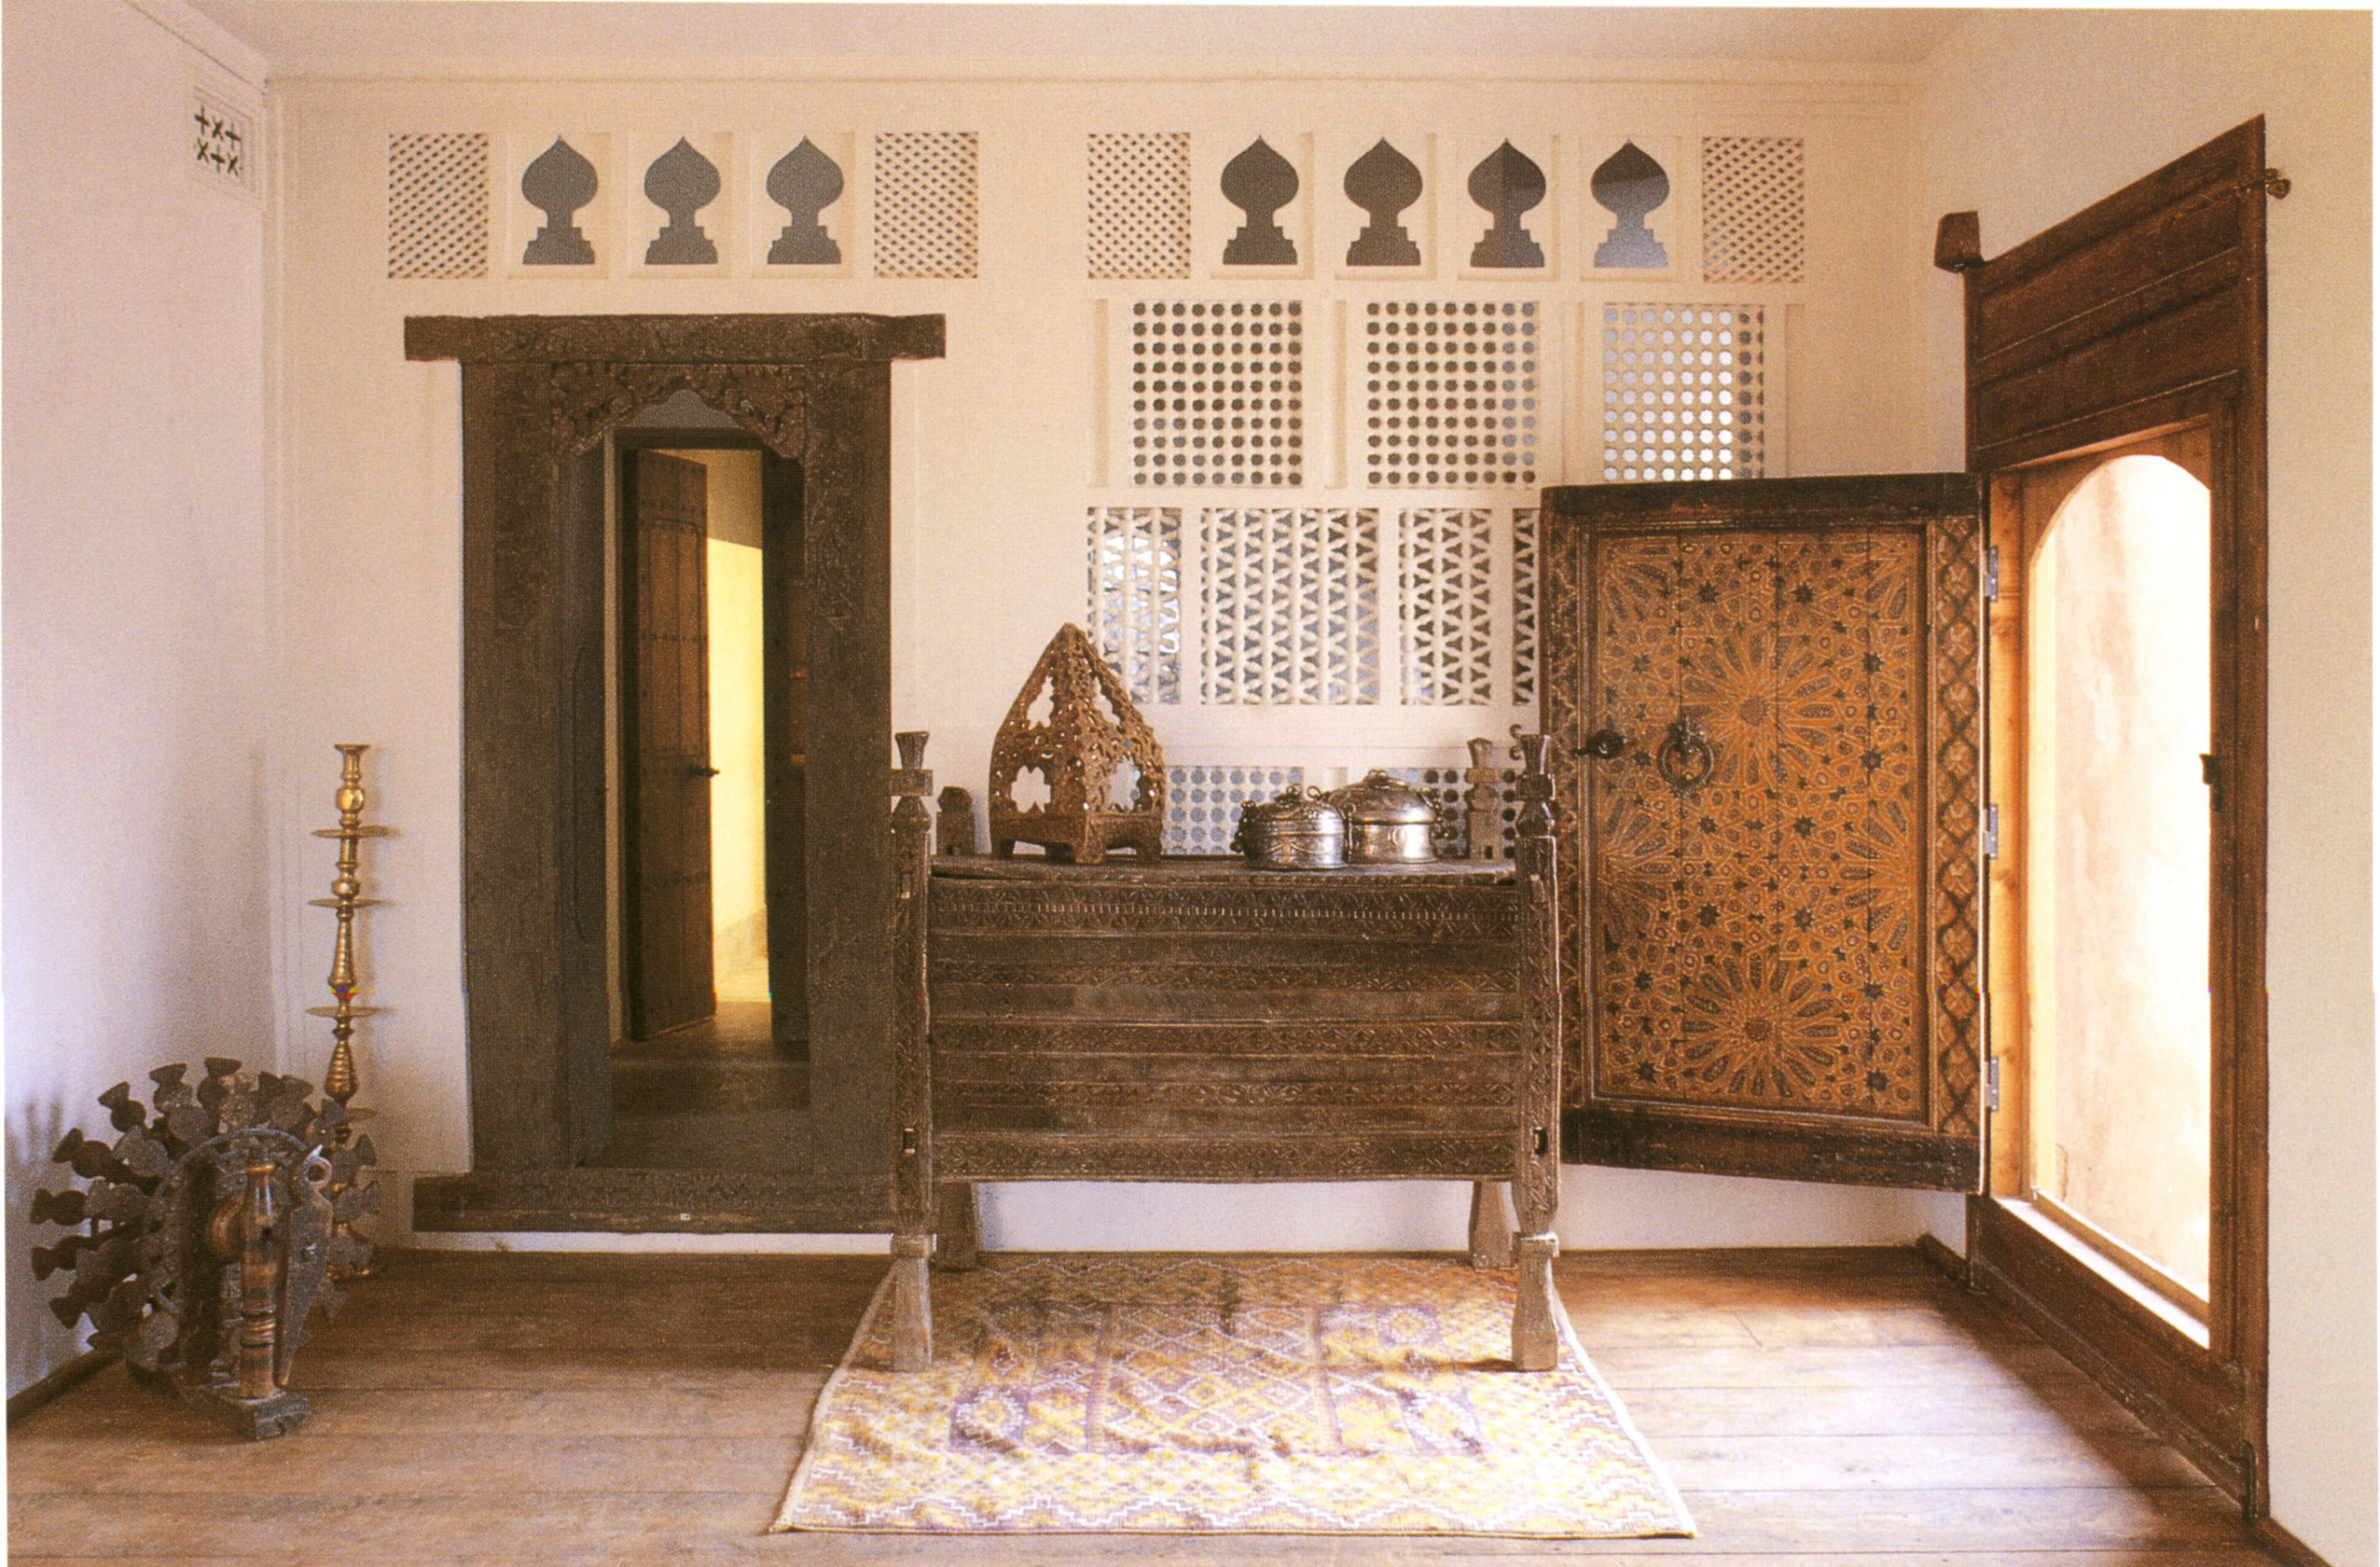 Moroccan Interior Design Style Expertise Products Forbeli Co Uk